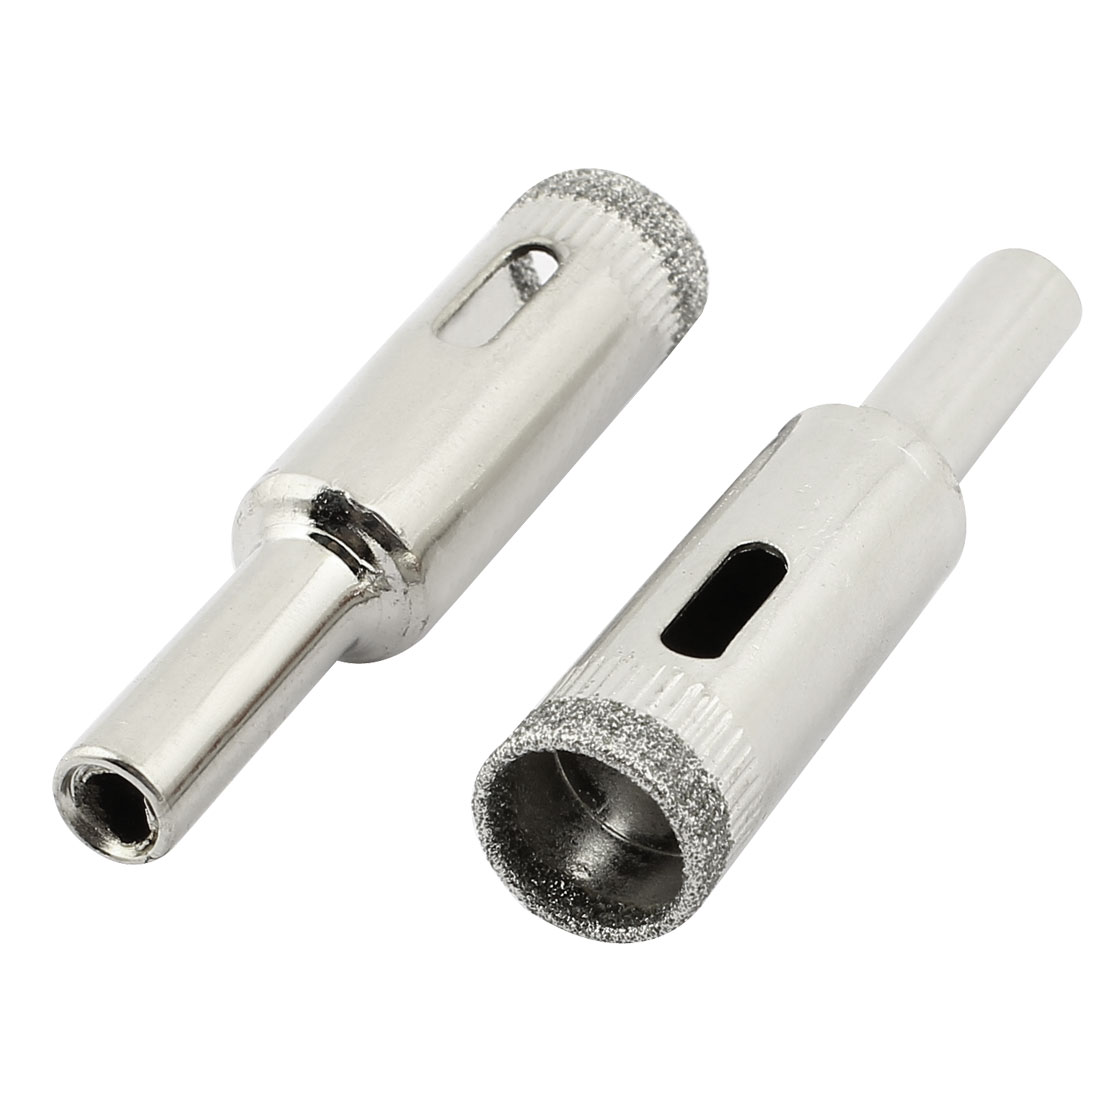 12mm Cutting Dia Diamond Coated Glass Tile Marble Drill Bit Hole Saw 2pcs